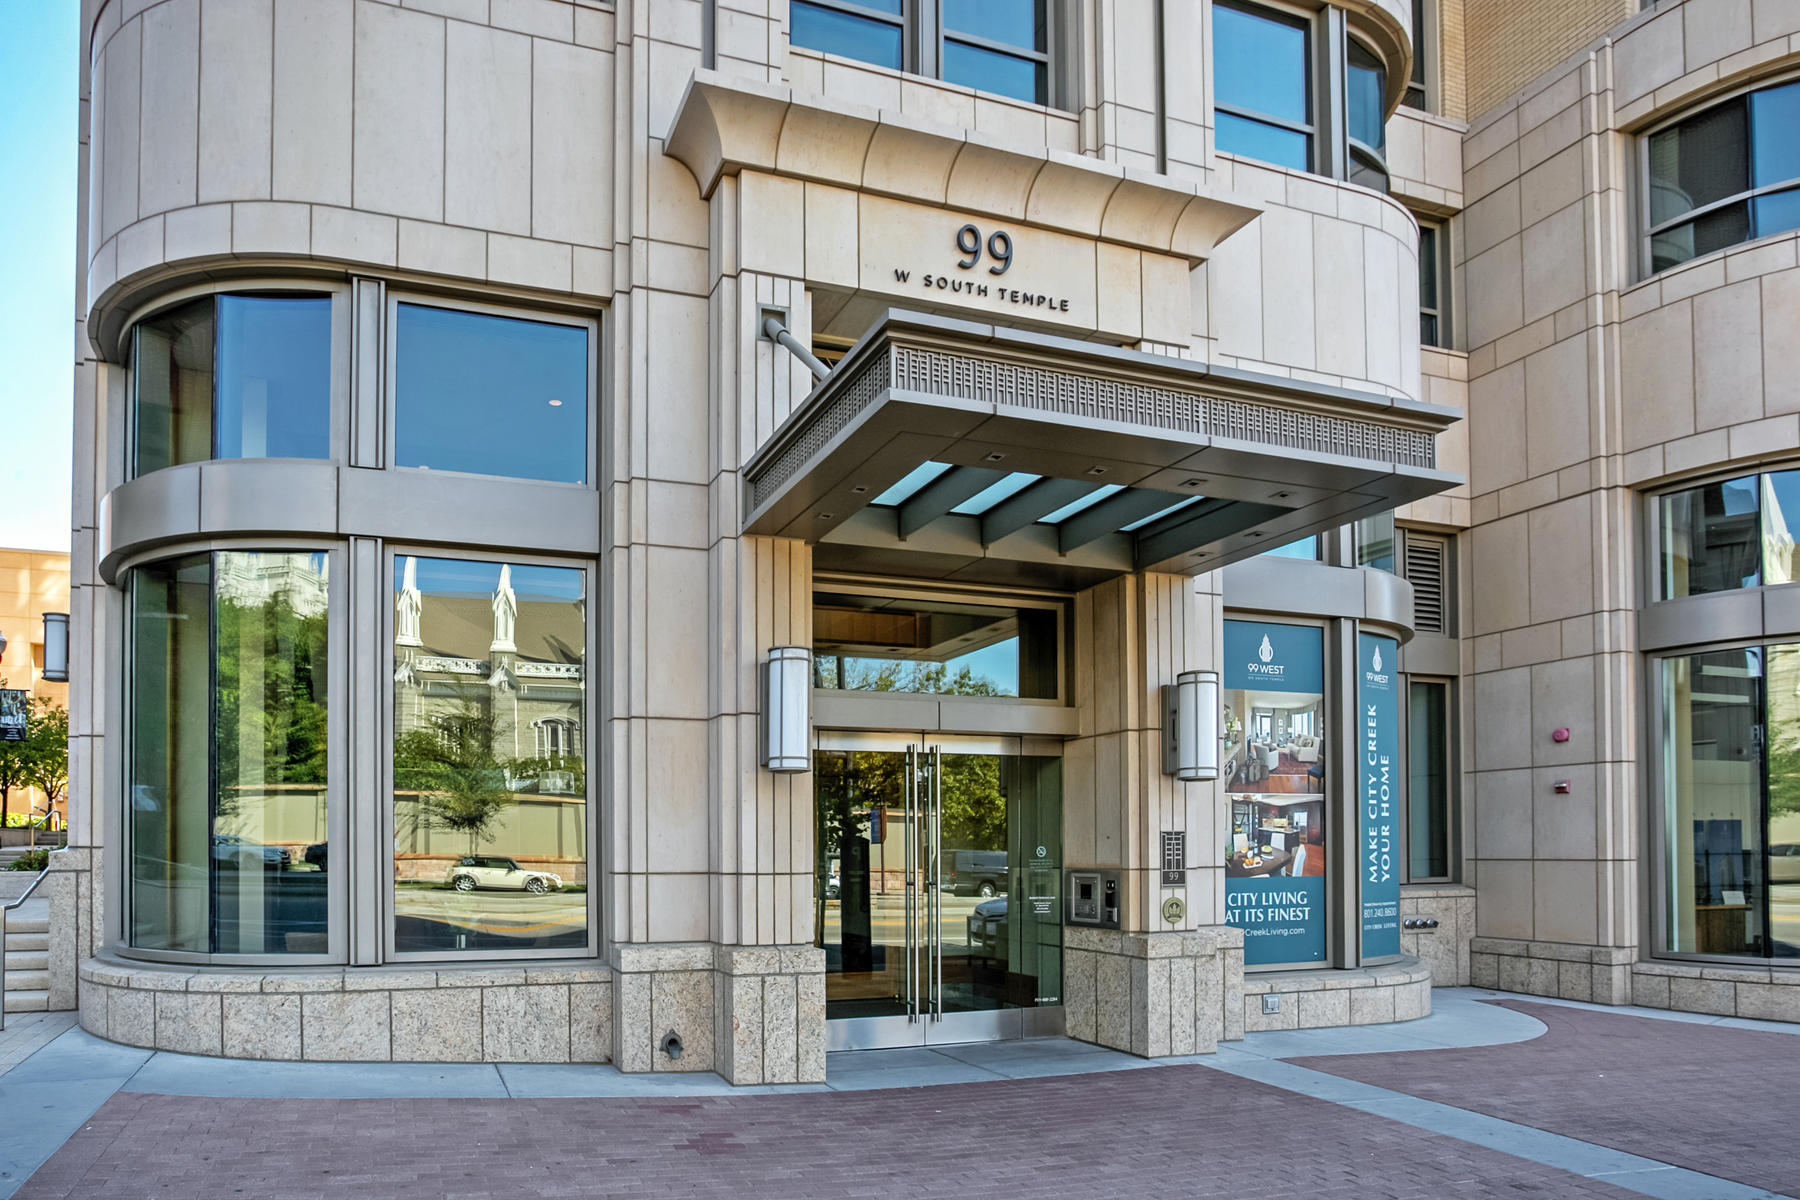 Condominiums for Sale at Gorgeous City Creek Condo on the 22nd Floor 99 W South Temple 2201-2 Salt Lake City, Utah 84101 United States